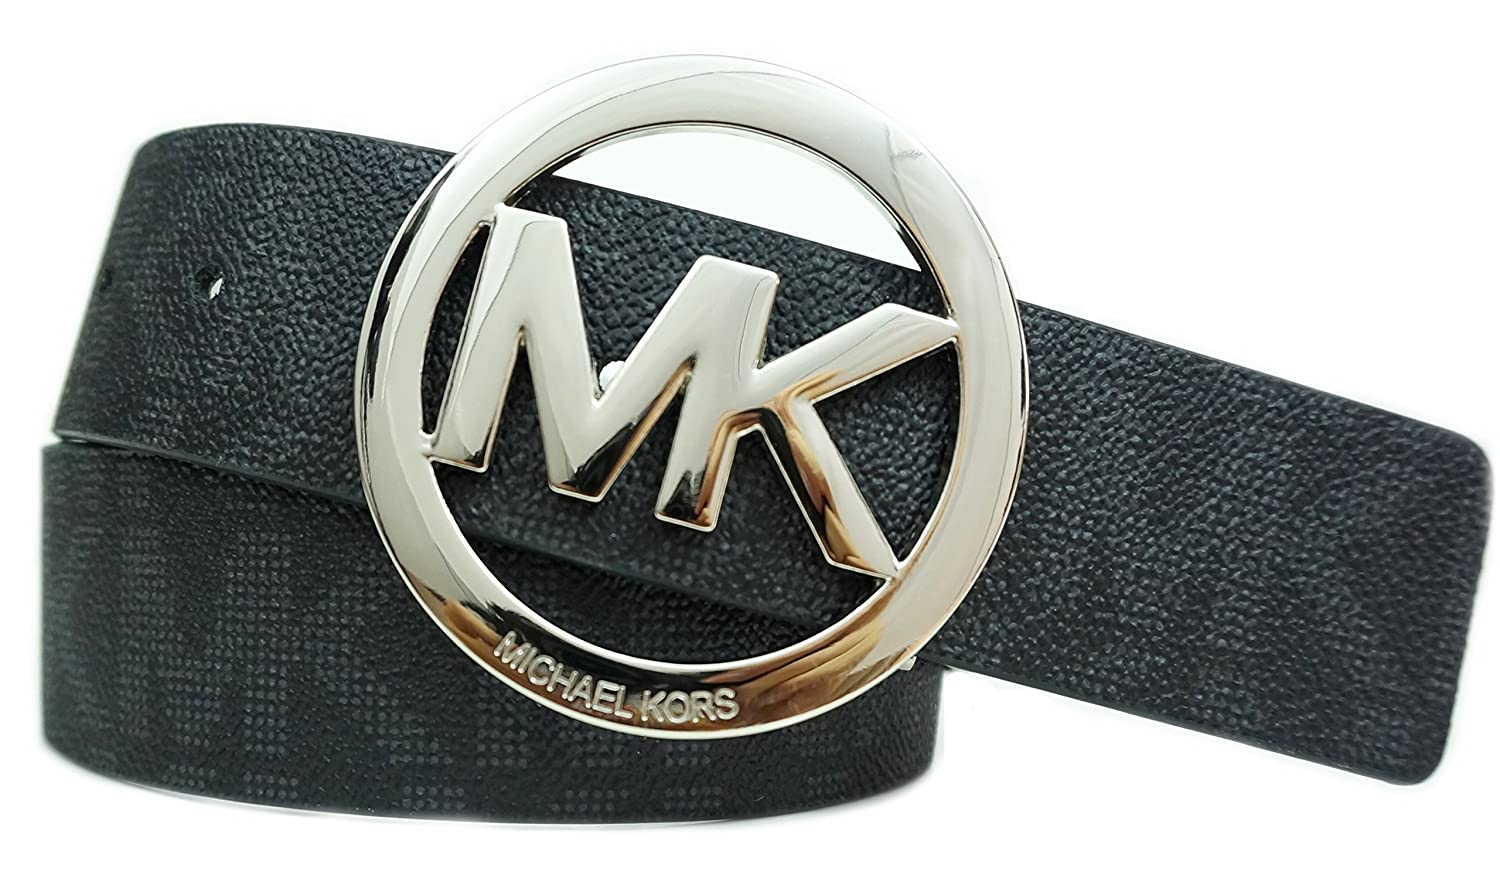 f2afef65b Michael Kors Womens MK Logo Black Belt Silver Buckle Size Small at Amazon Women's  Clothing store: